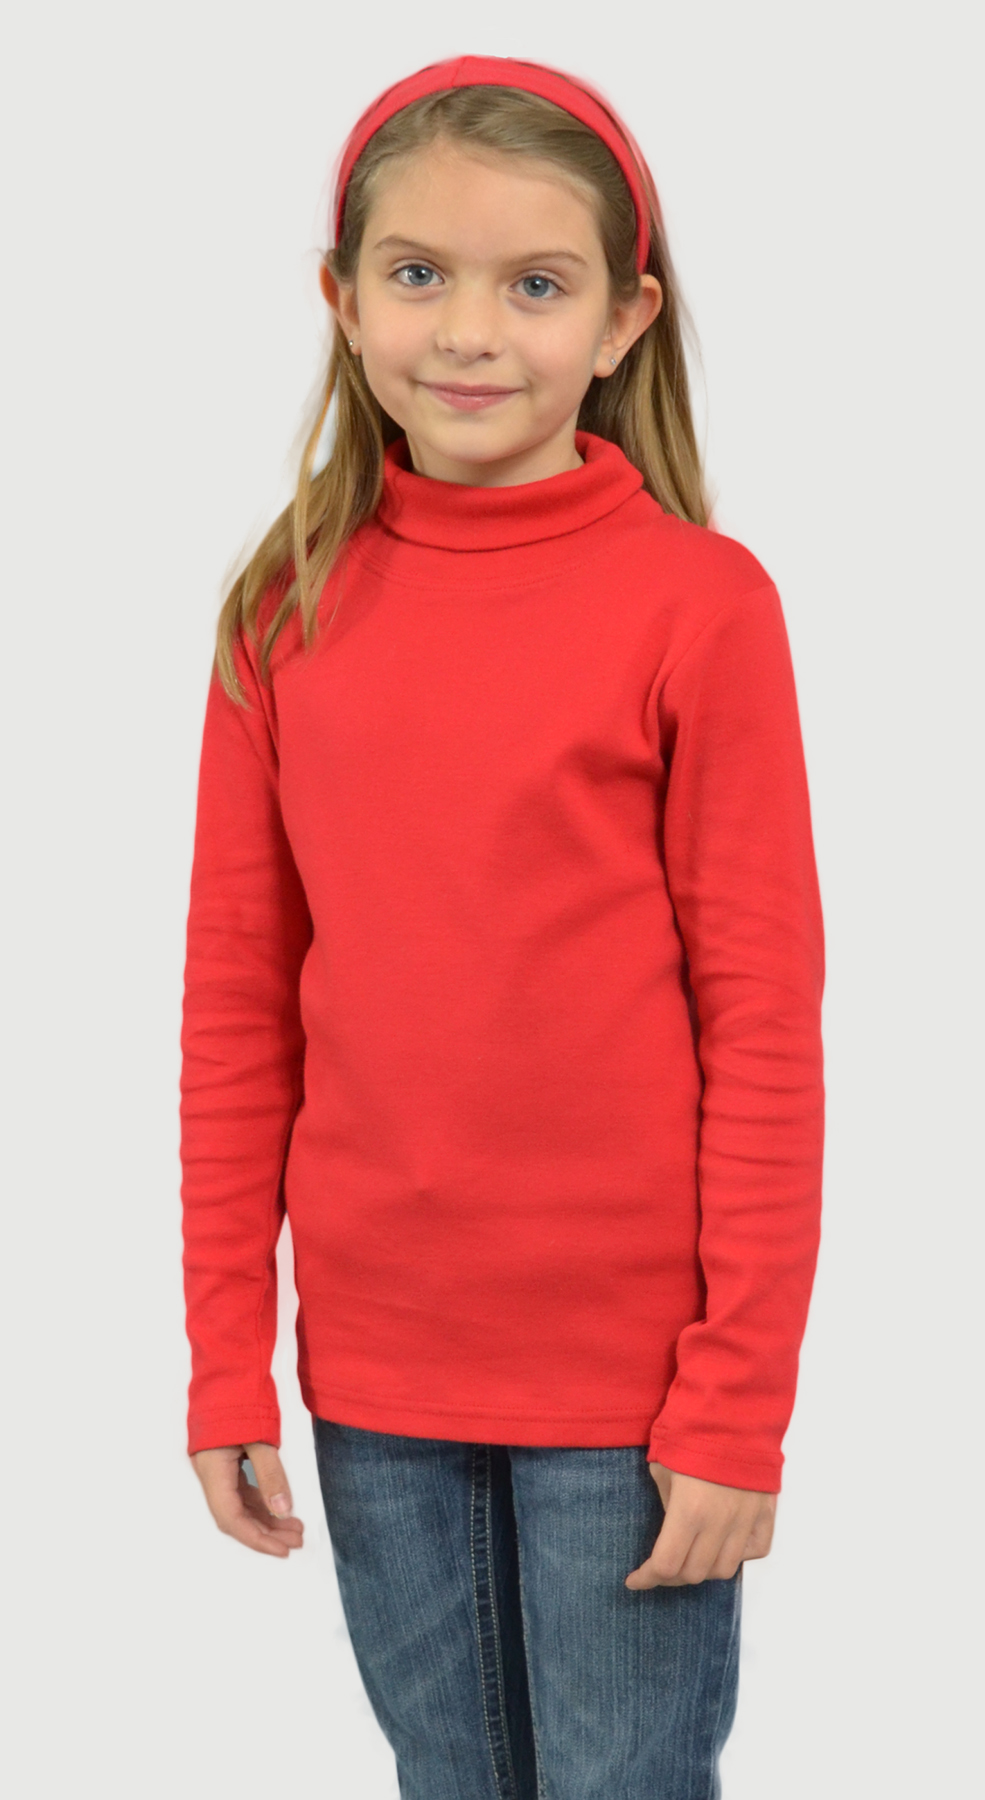 Monag 402008 - Baby Rib Long Sleeve High Neck Tee